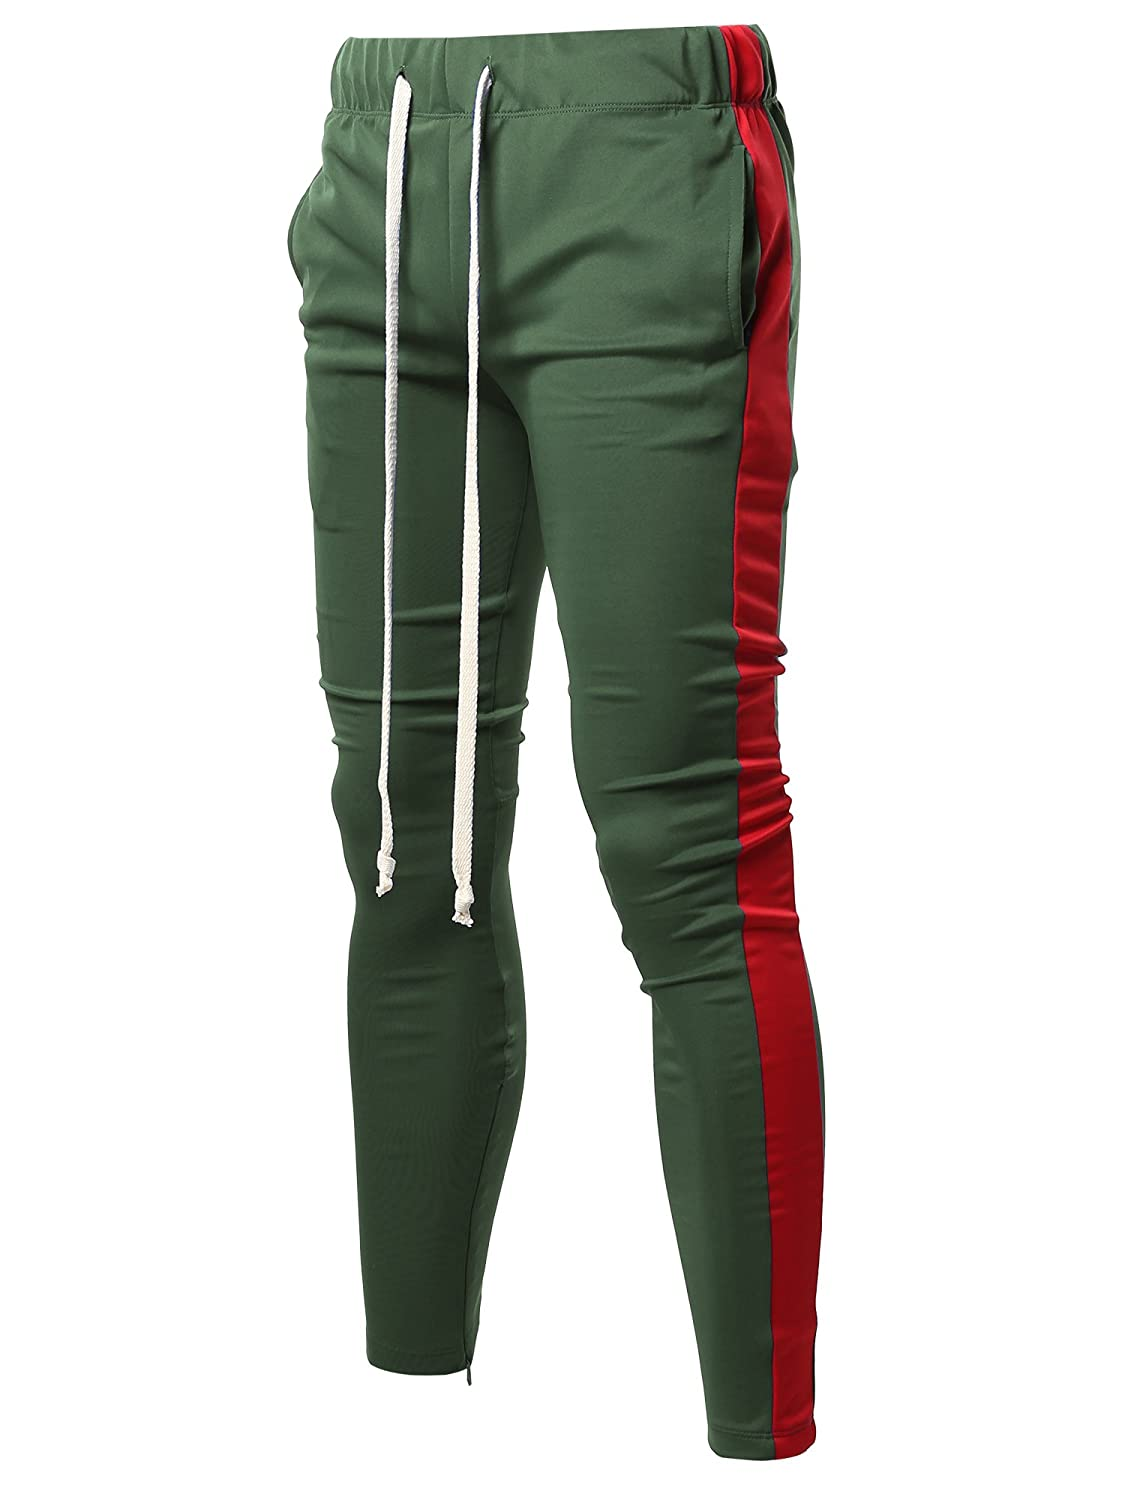 Style by William PANTS メンズ B07CXFWYQB Large|Fsmptl0005 Green Red Fsmptl0005 Green Red Large